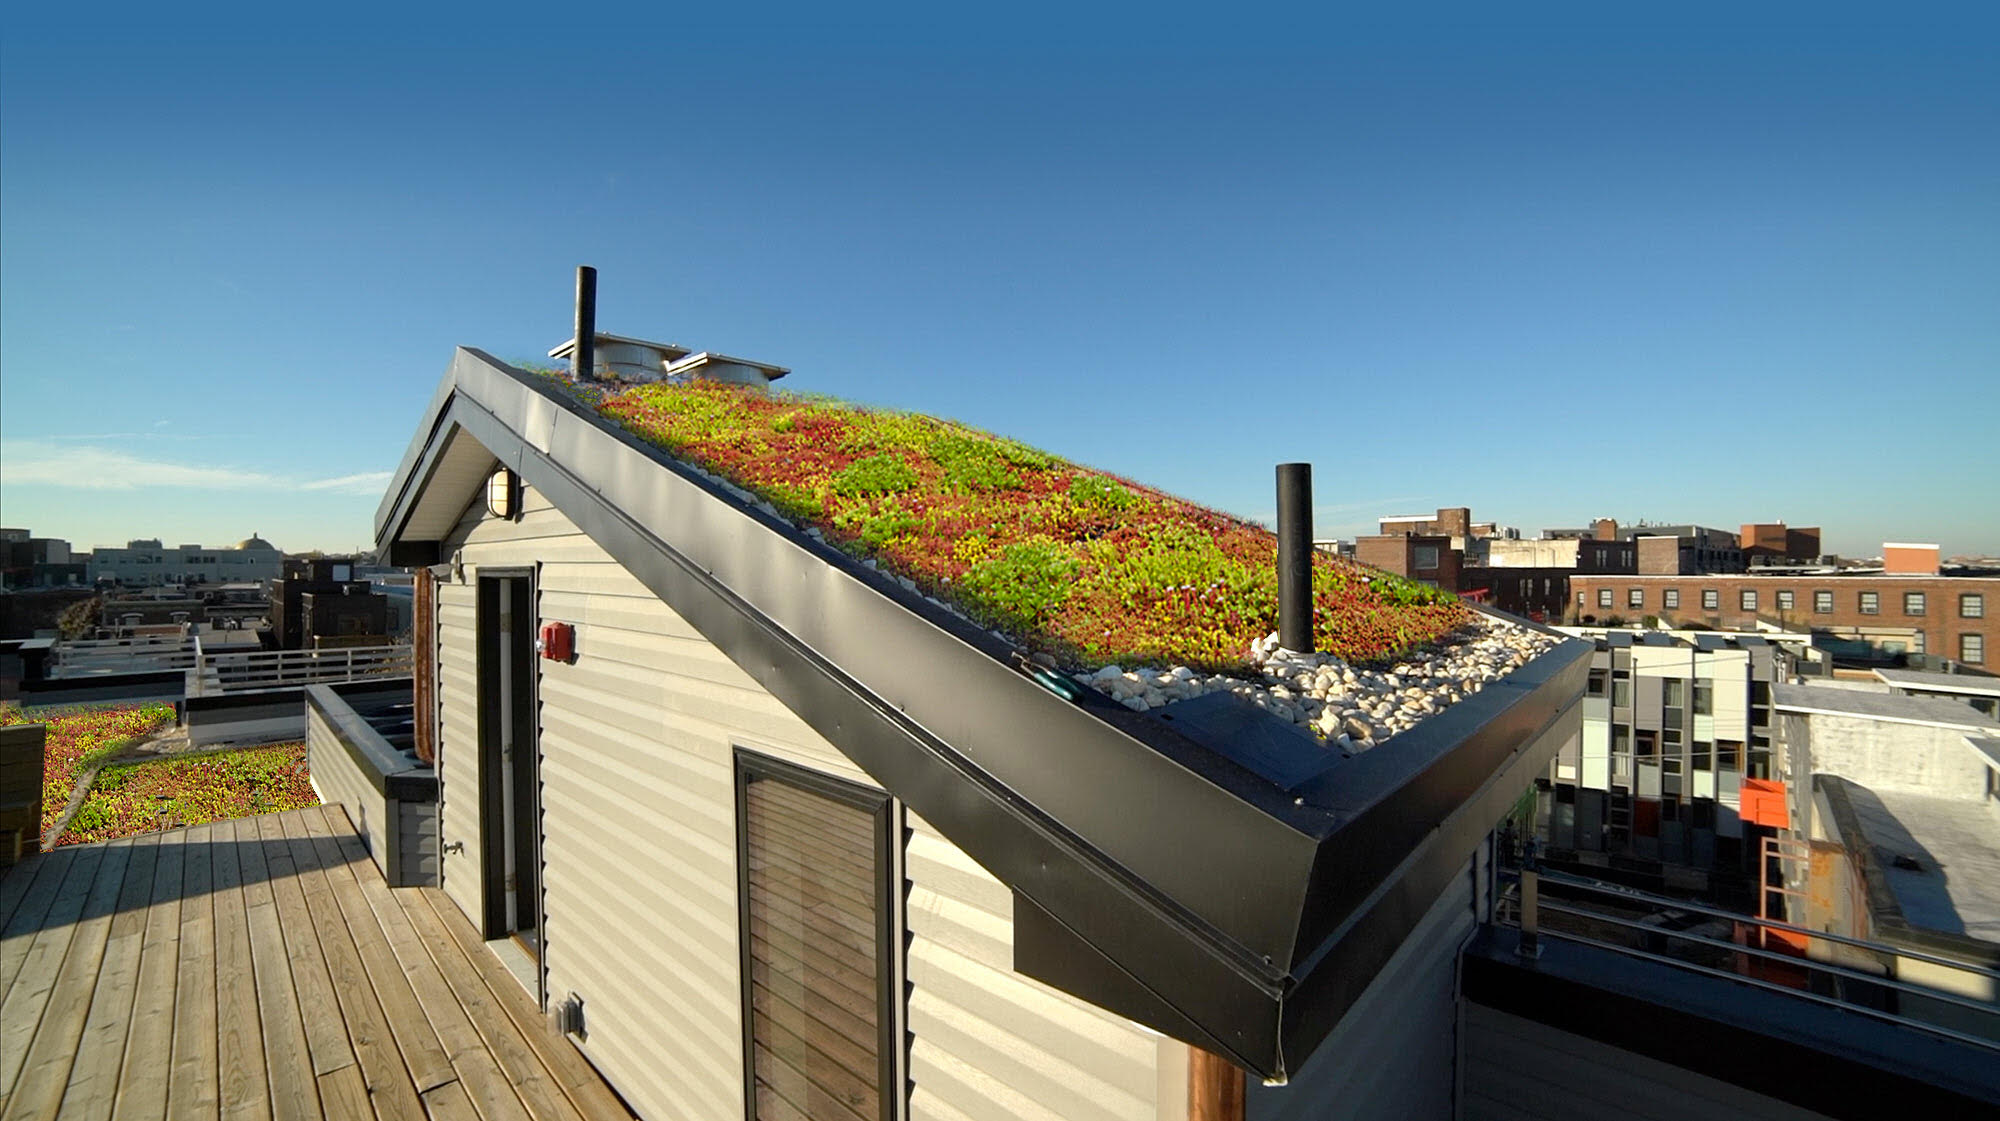 Green Roof Pilot House on Residential Building in Northern Liberties FUSA Designs #livingcityarch